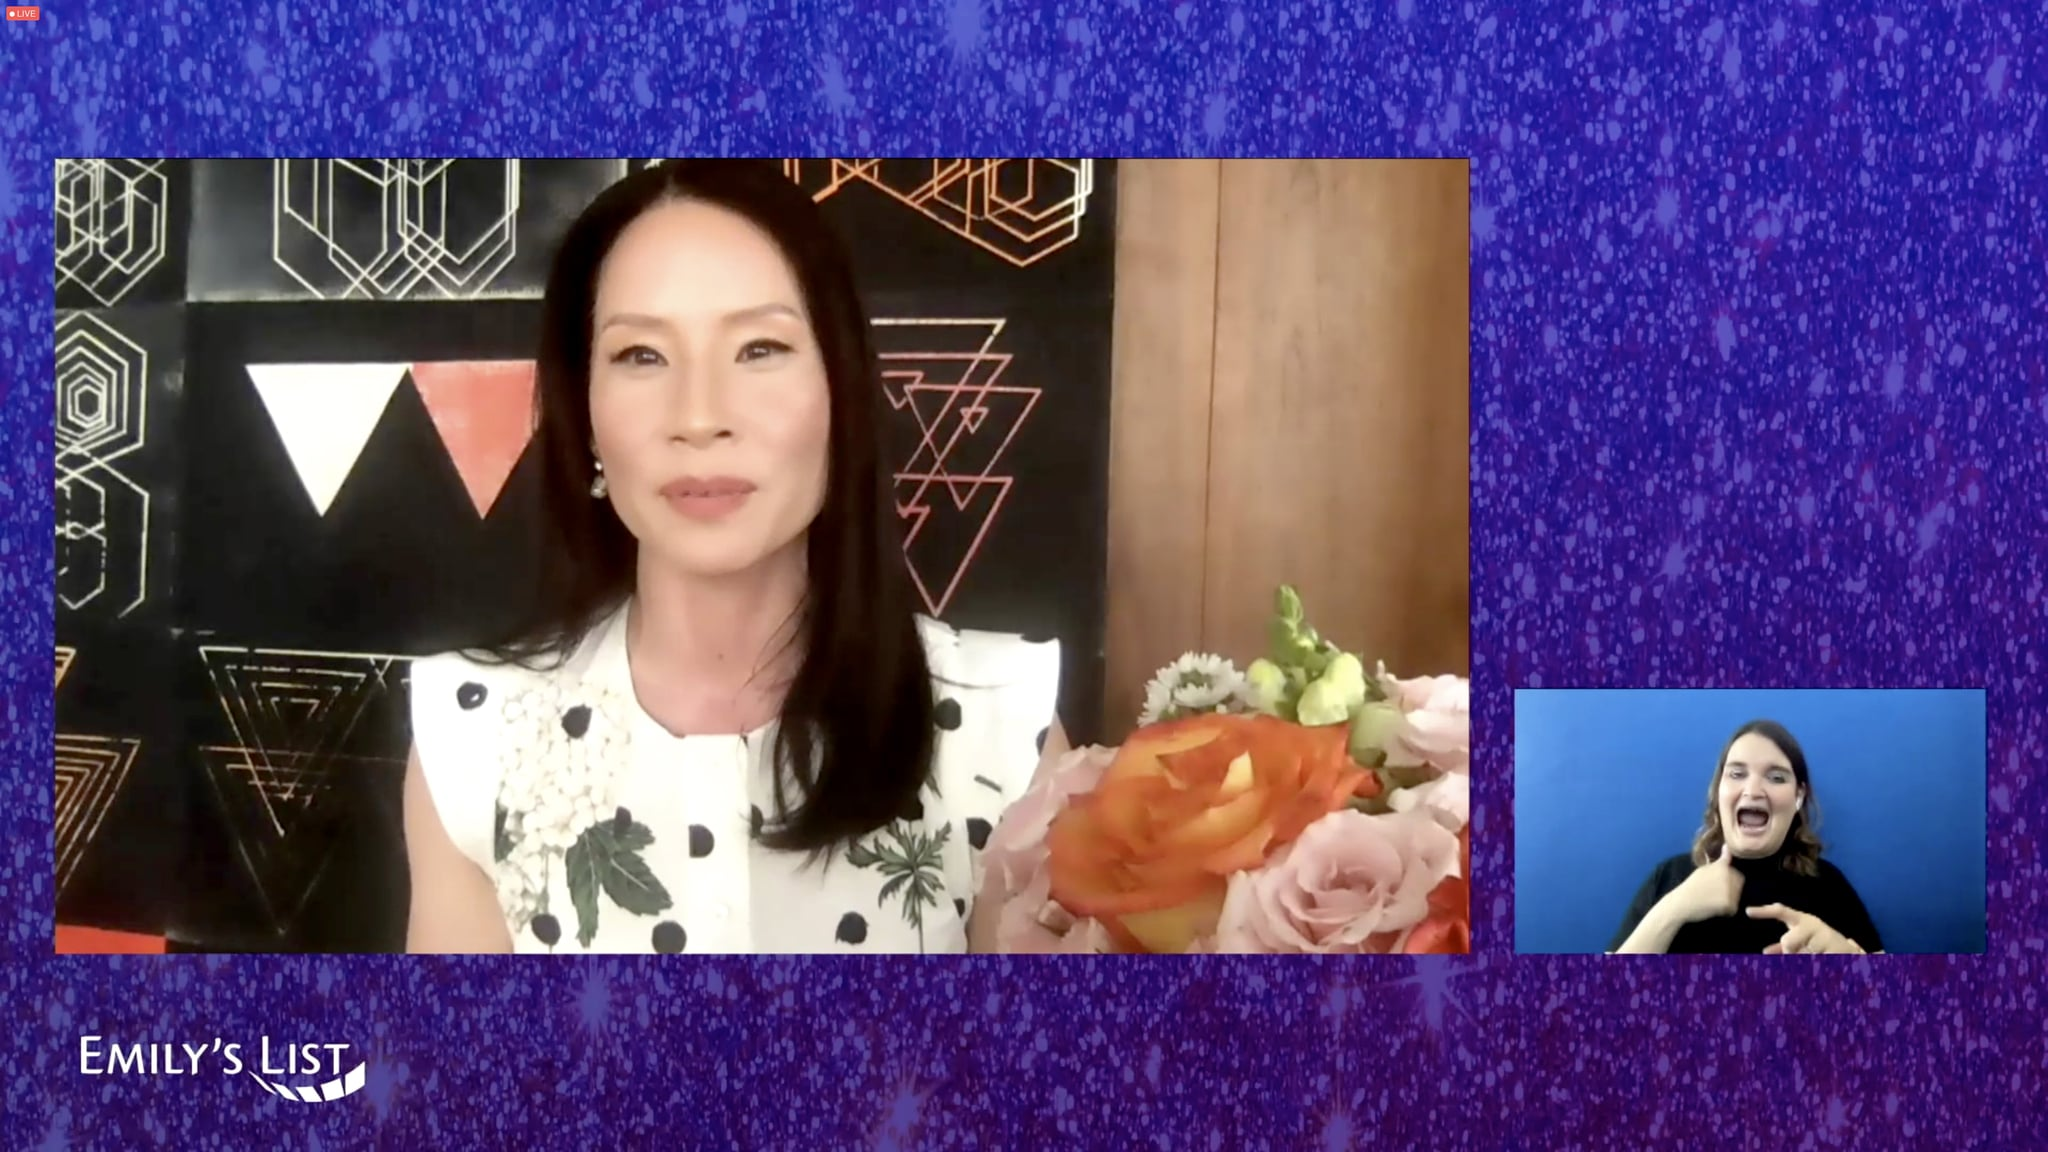 UNSPECIFIED - APRIL 20: In this screengrab, Lucy Liu speaks during the EMILY's List Fourth Annual Pre-Oscars Event on Tuesday, on April 20, 2021. (Photo by Getty Images/Getty Images for EMILY's List)